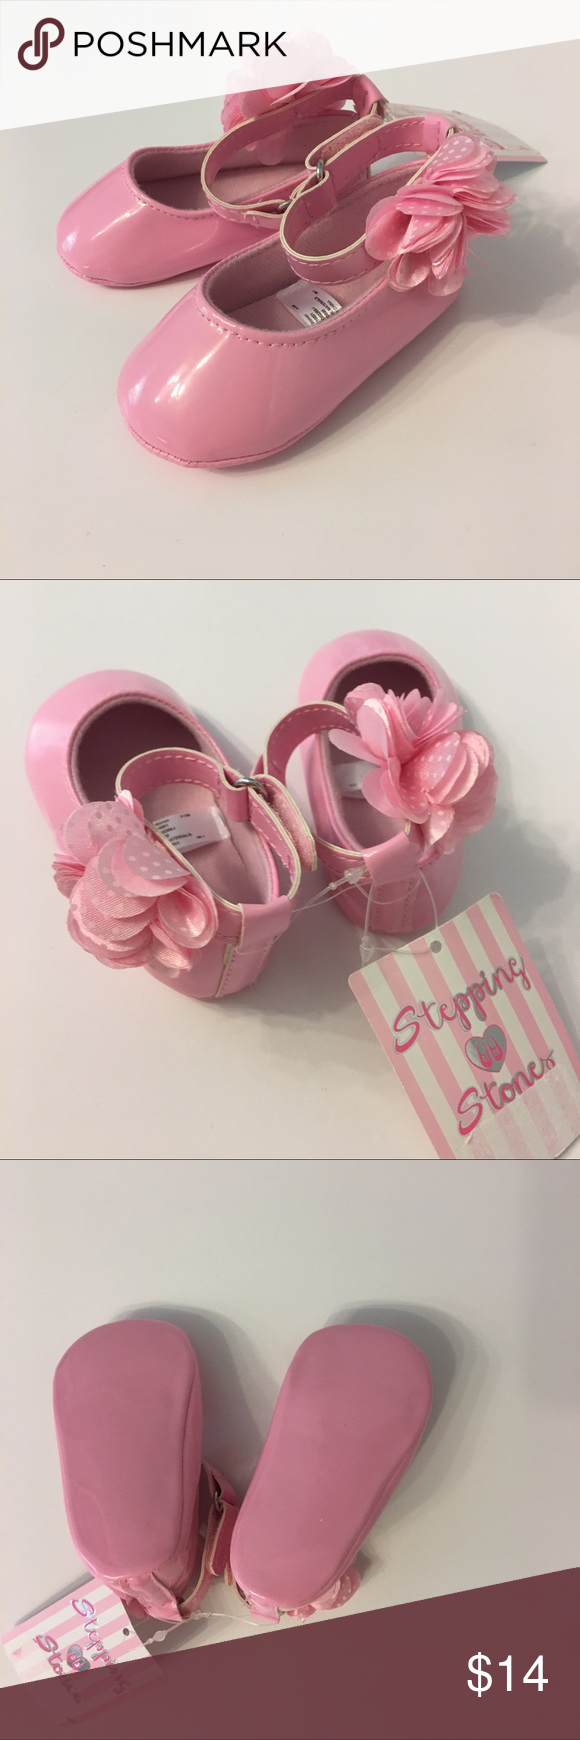 Nwt Pink Flower Shoes Size 9 12 Months Flower Shoes Pink Shoes